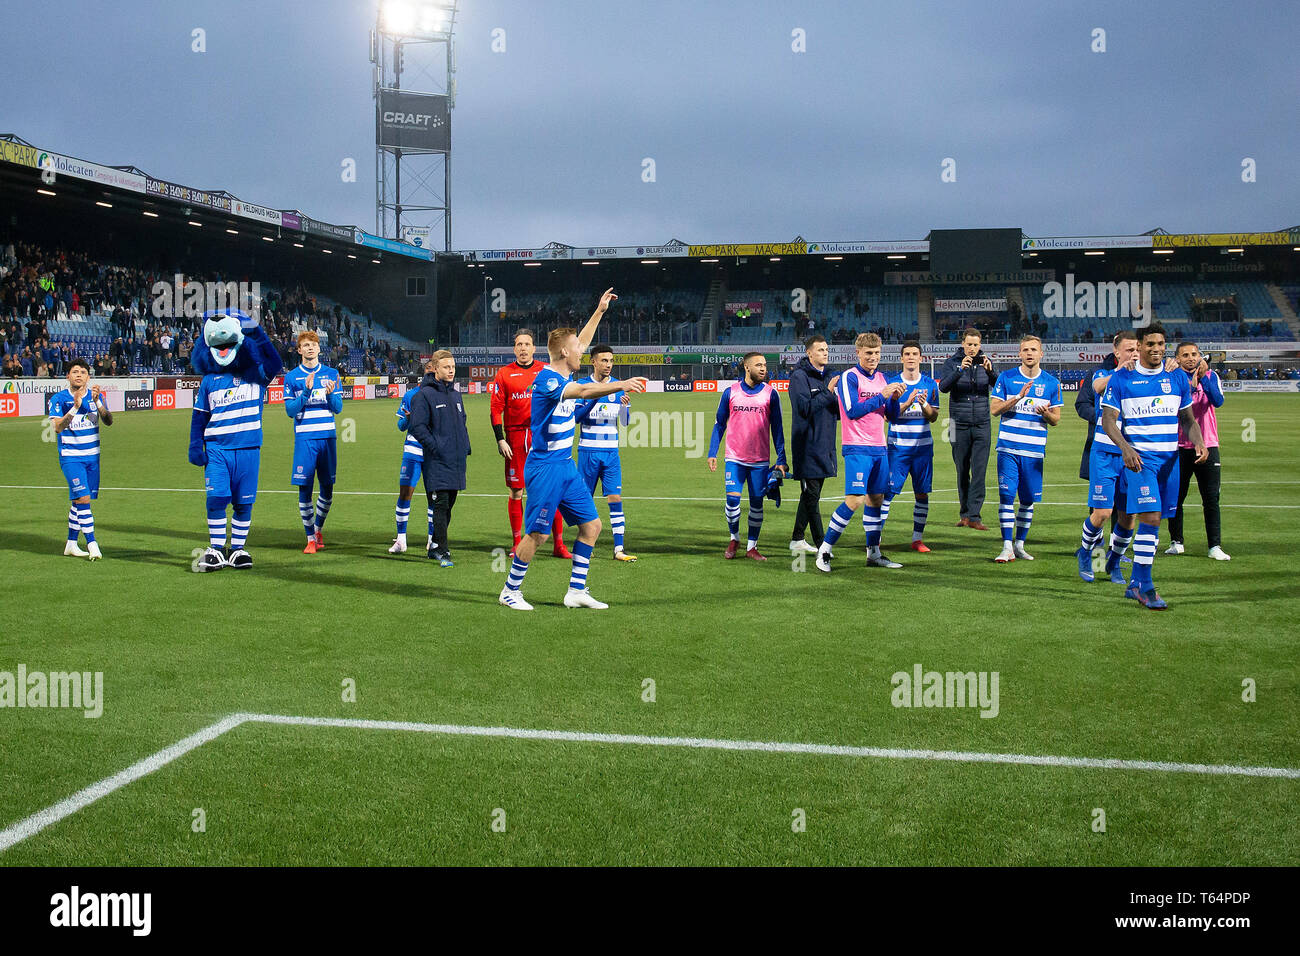 Zwolle 29 04 2019 Mac3park Stadium Season 2018 2019 Dutch Eredivisie Pec Zwolle Celebrating The 3 2 Win During The Match Pec Zwolle Fc Groningen Stock Photo Alamy